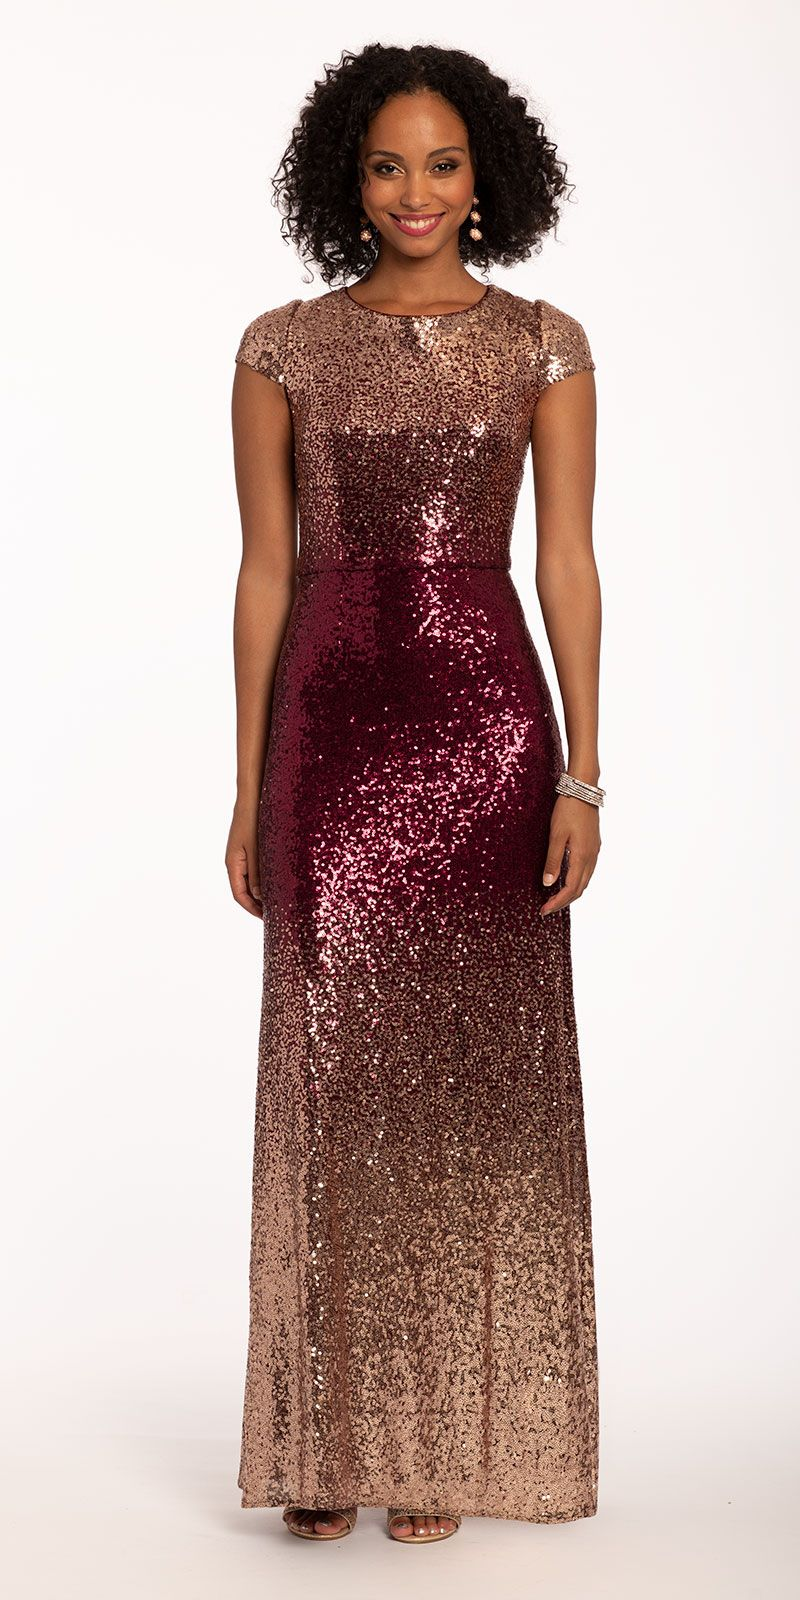 Achieve Celeb Status In This Ritzy Wedding Guest Dress Featuring A Jewel Neckline Fitted Bodice And O Glamorous Evening Gowns Column Dress Glamourous Evening [ 1600 x 800 Pixel ]